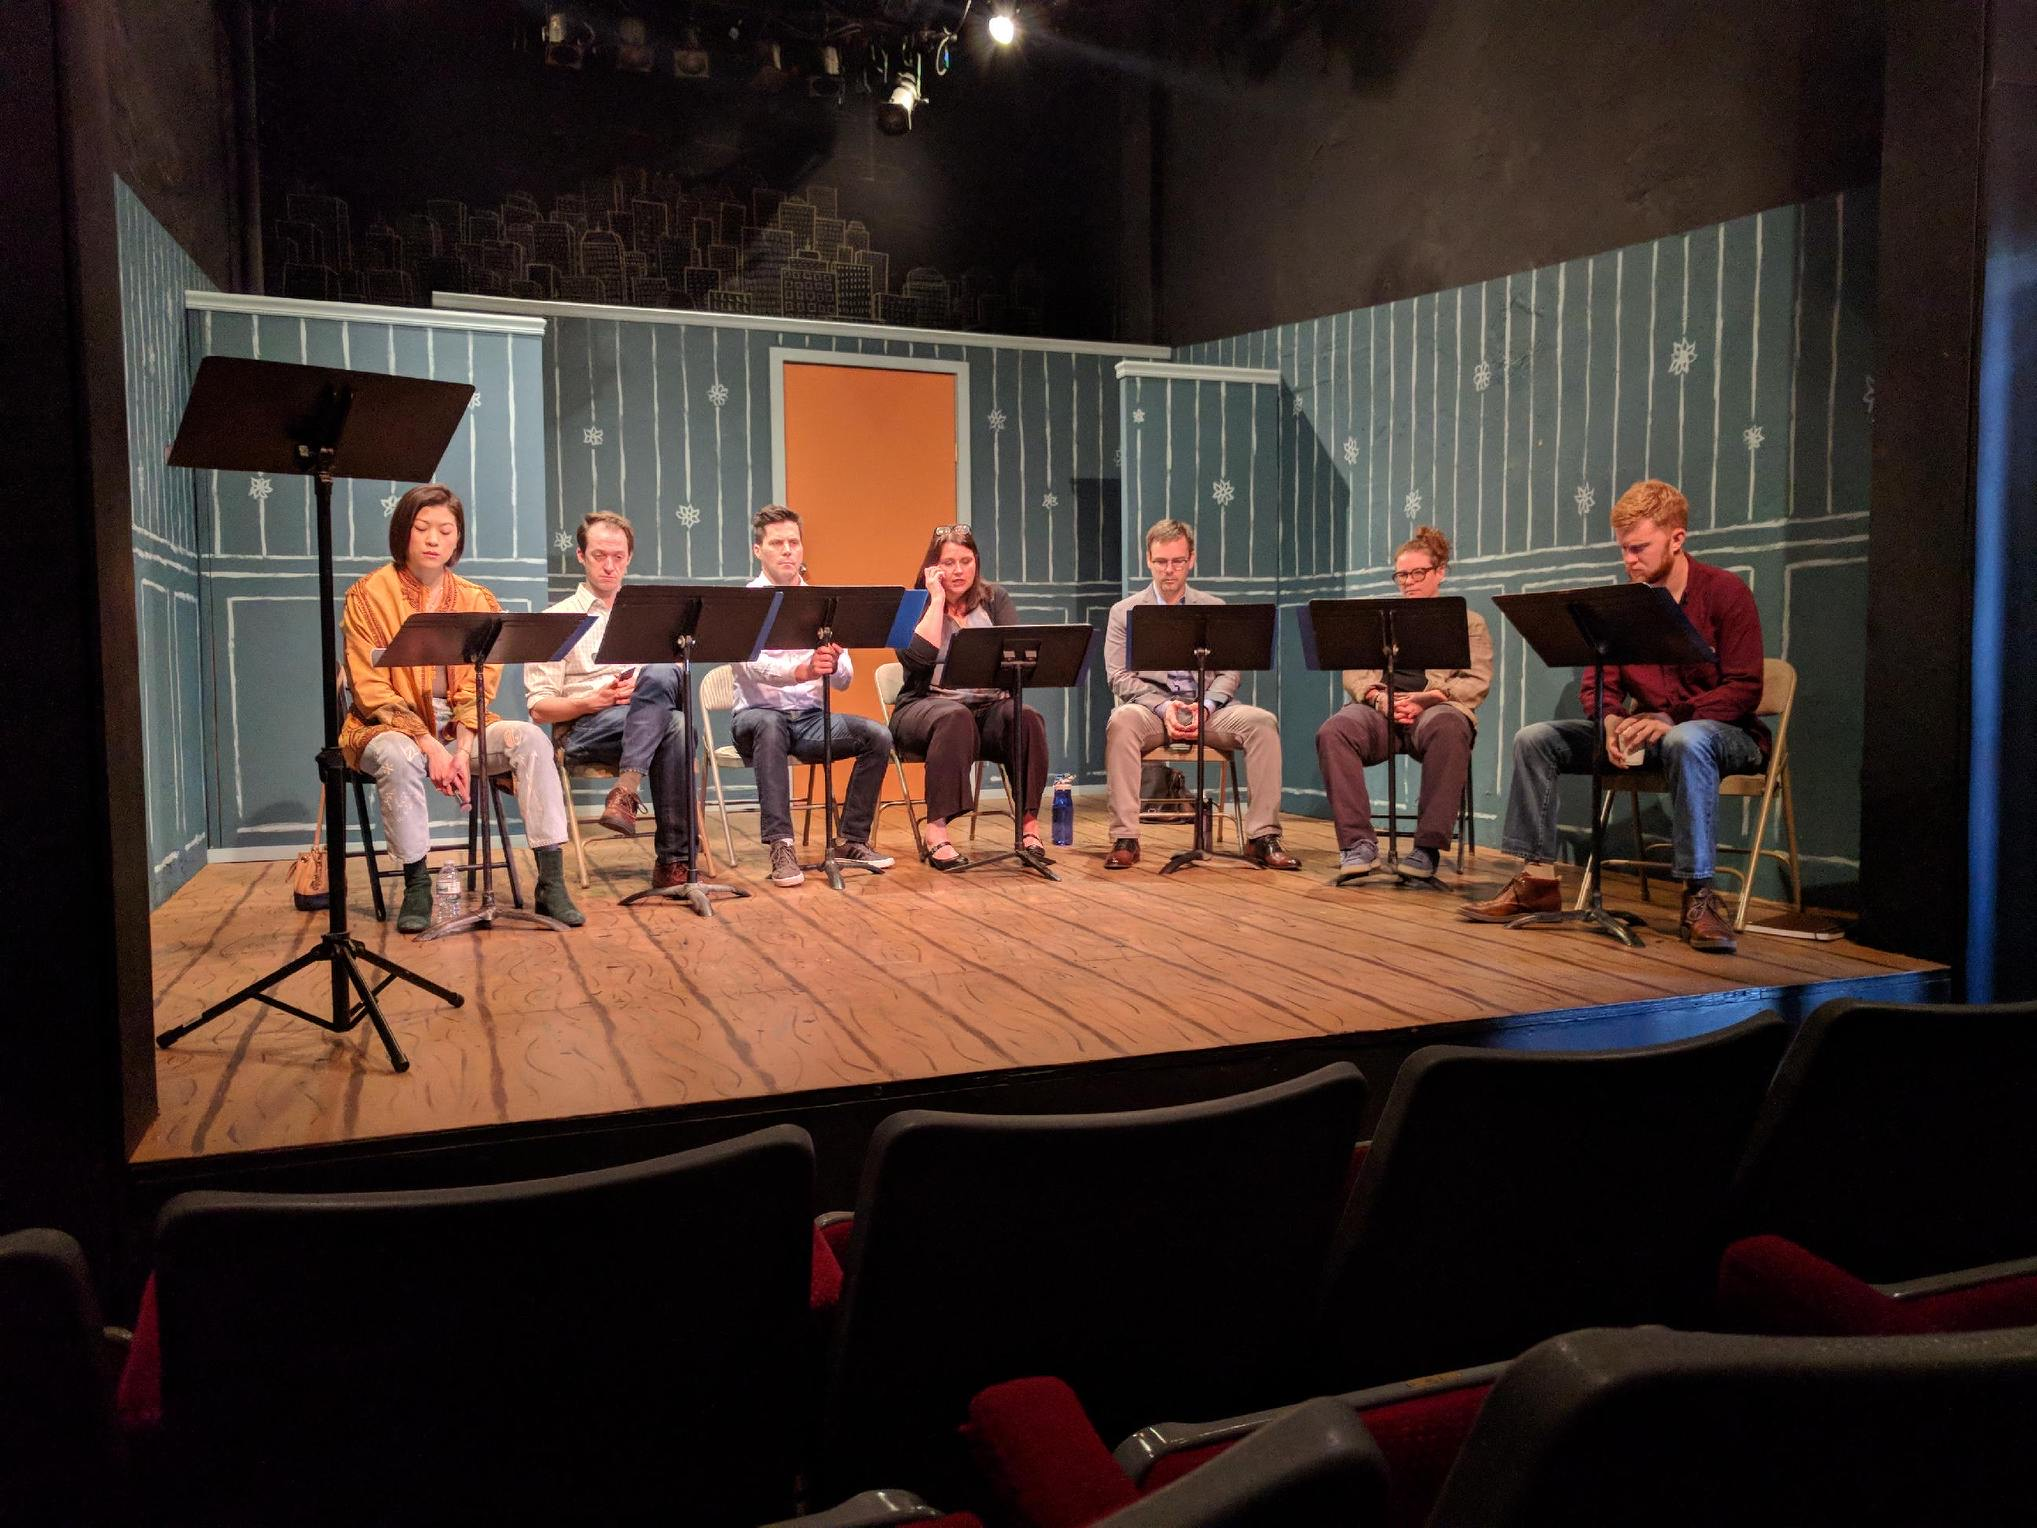 Reading Cast (from left): Amy Tsang, Tyler Seiple, Brice Williams, Stephanie Lesh-Farrell, Tommy Burr, Kerrie Blaisdell, Caleb Haydock